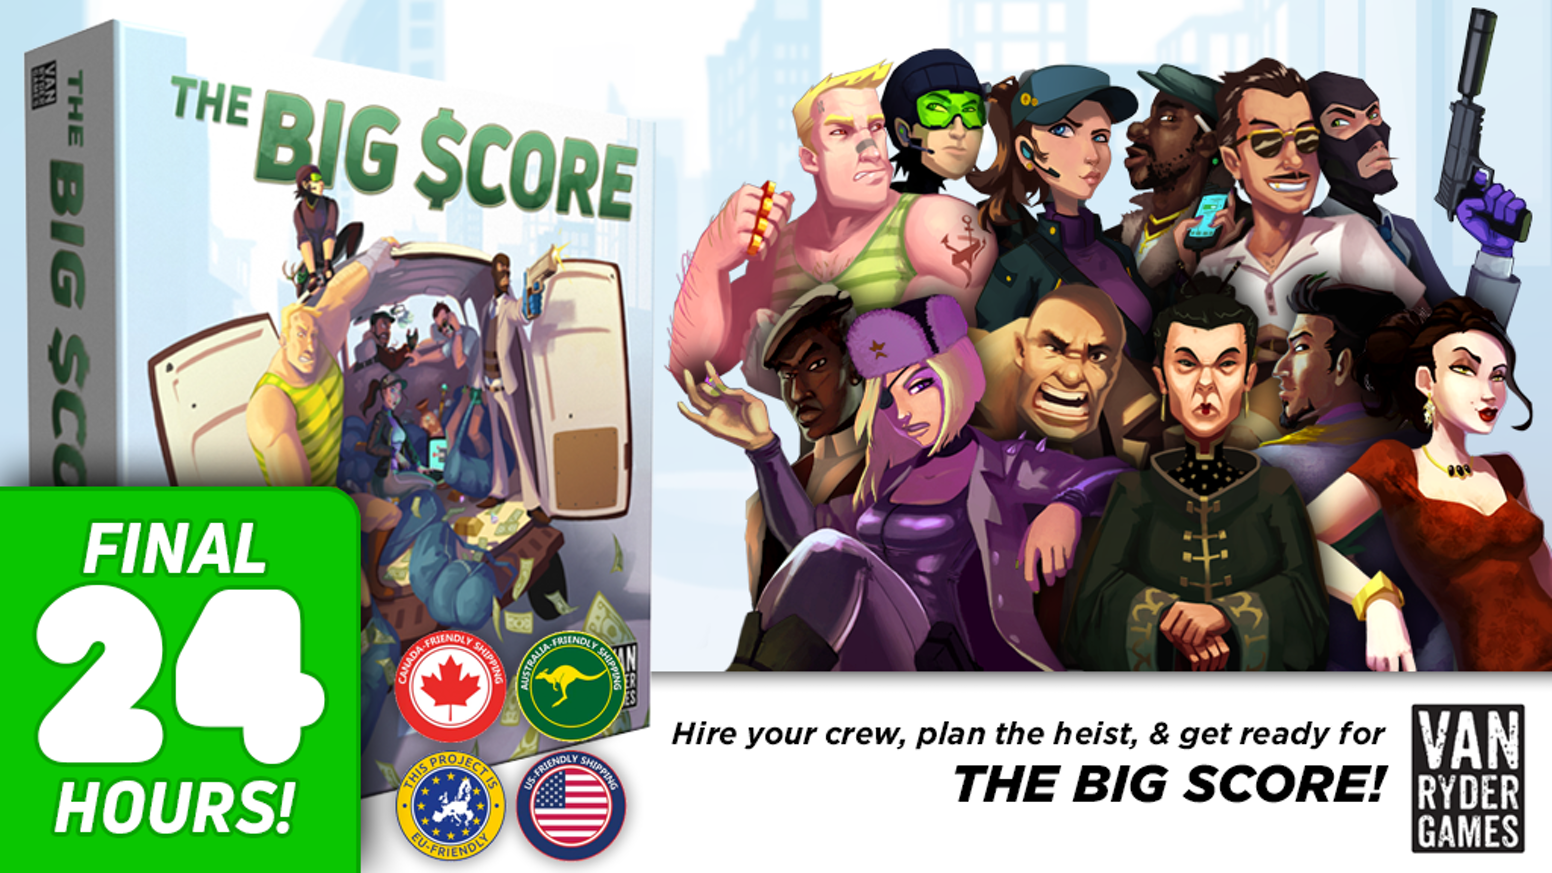 The Big Score is a competitive heist game for 1-6 players that features card drafting and press-your-luck game play!